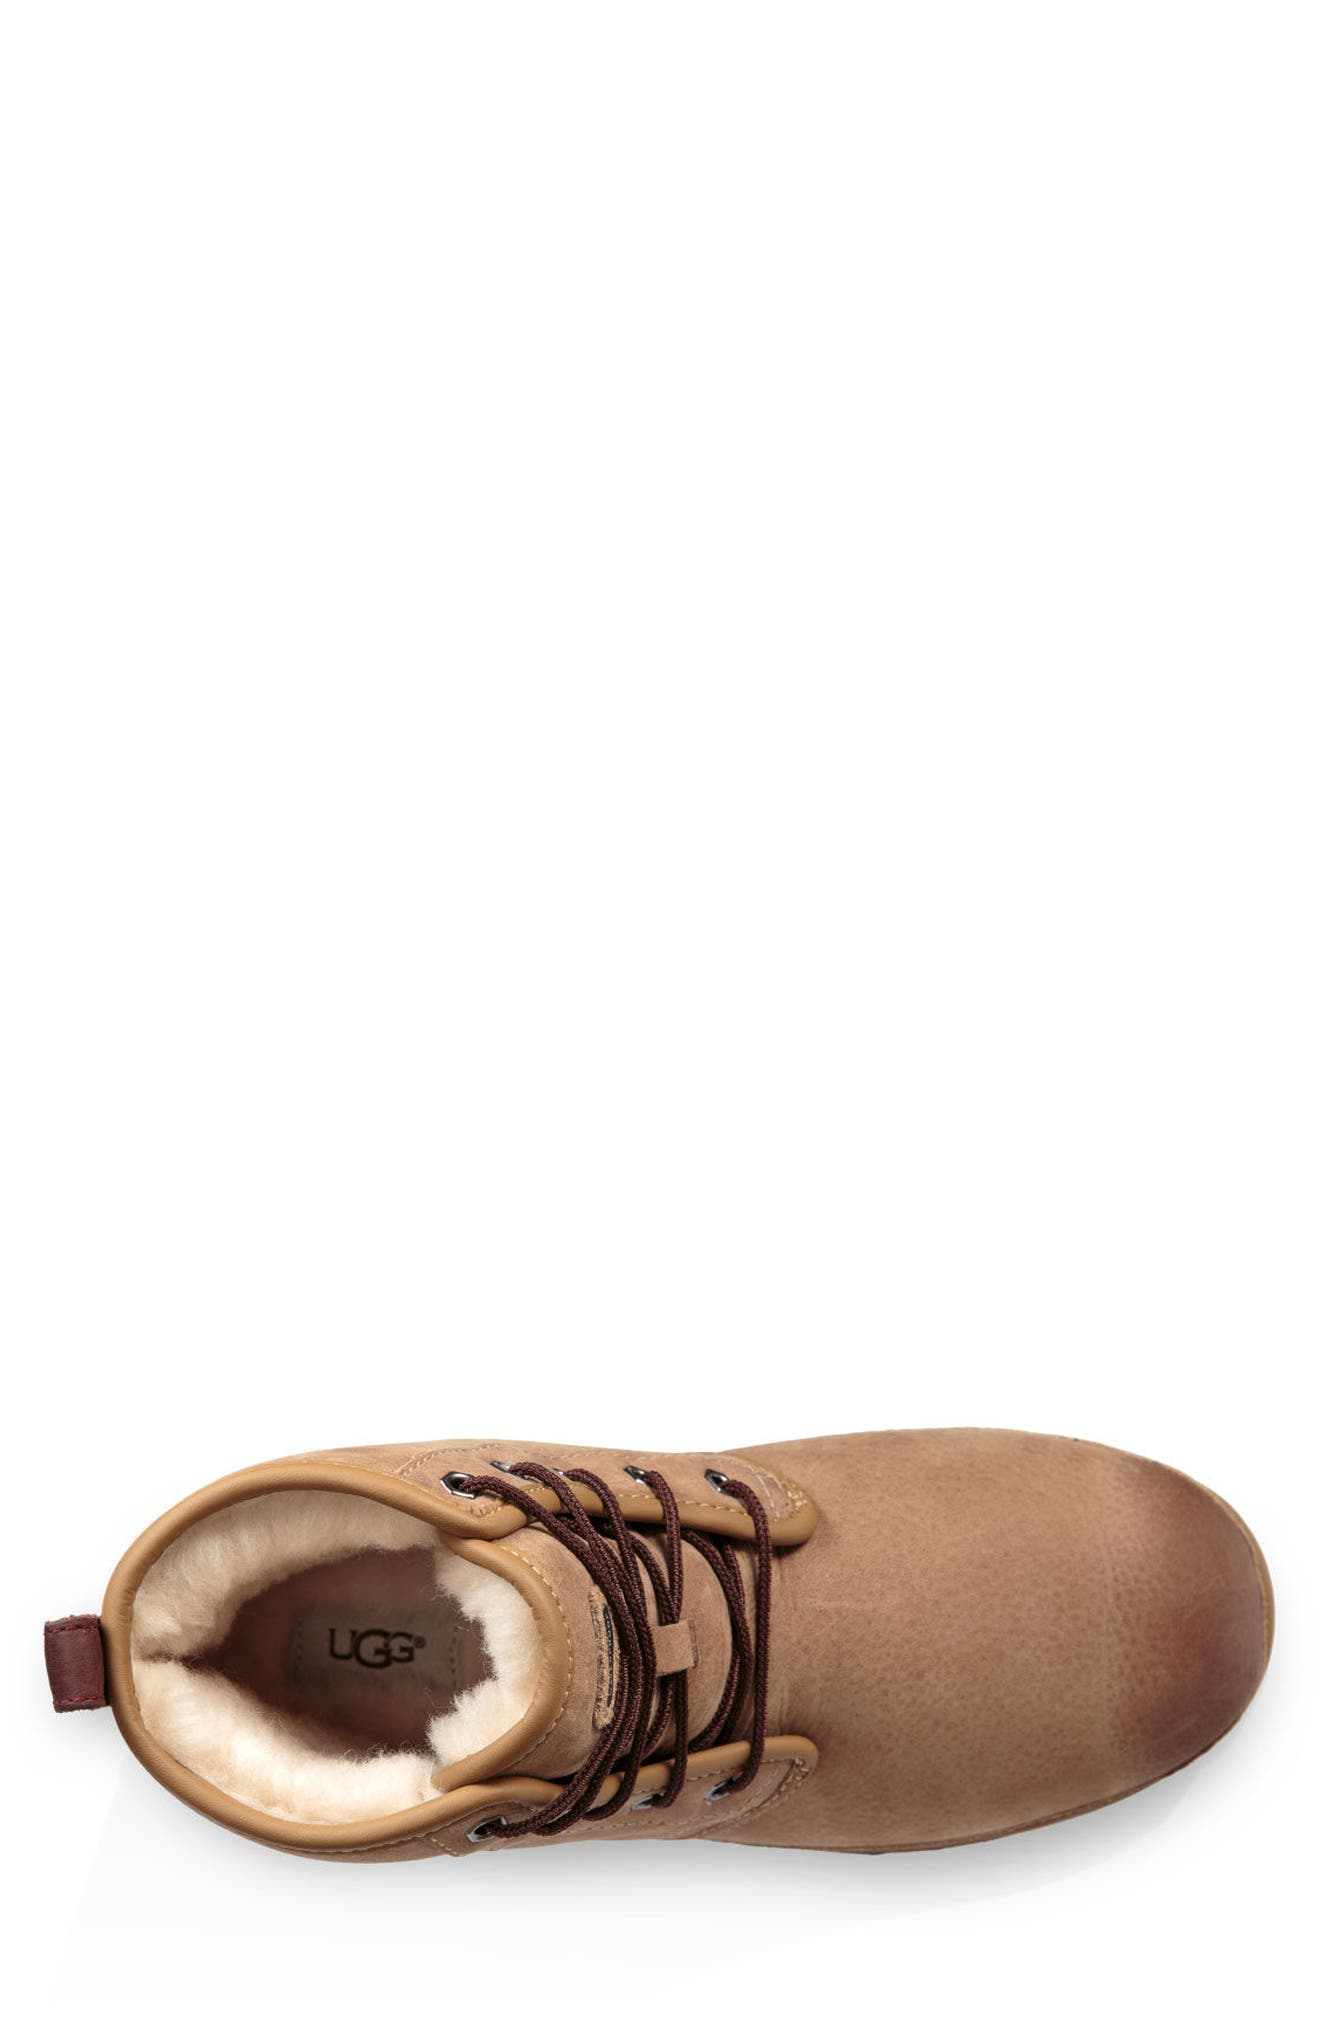 Harkley Waterproof Lace-Up Boot,                             Alternate thumbnail 4, color,                             DESERT TAN